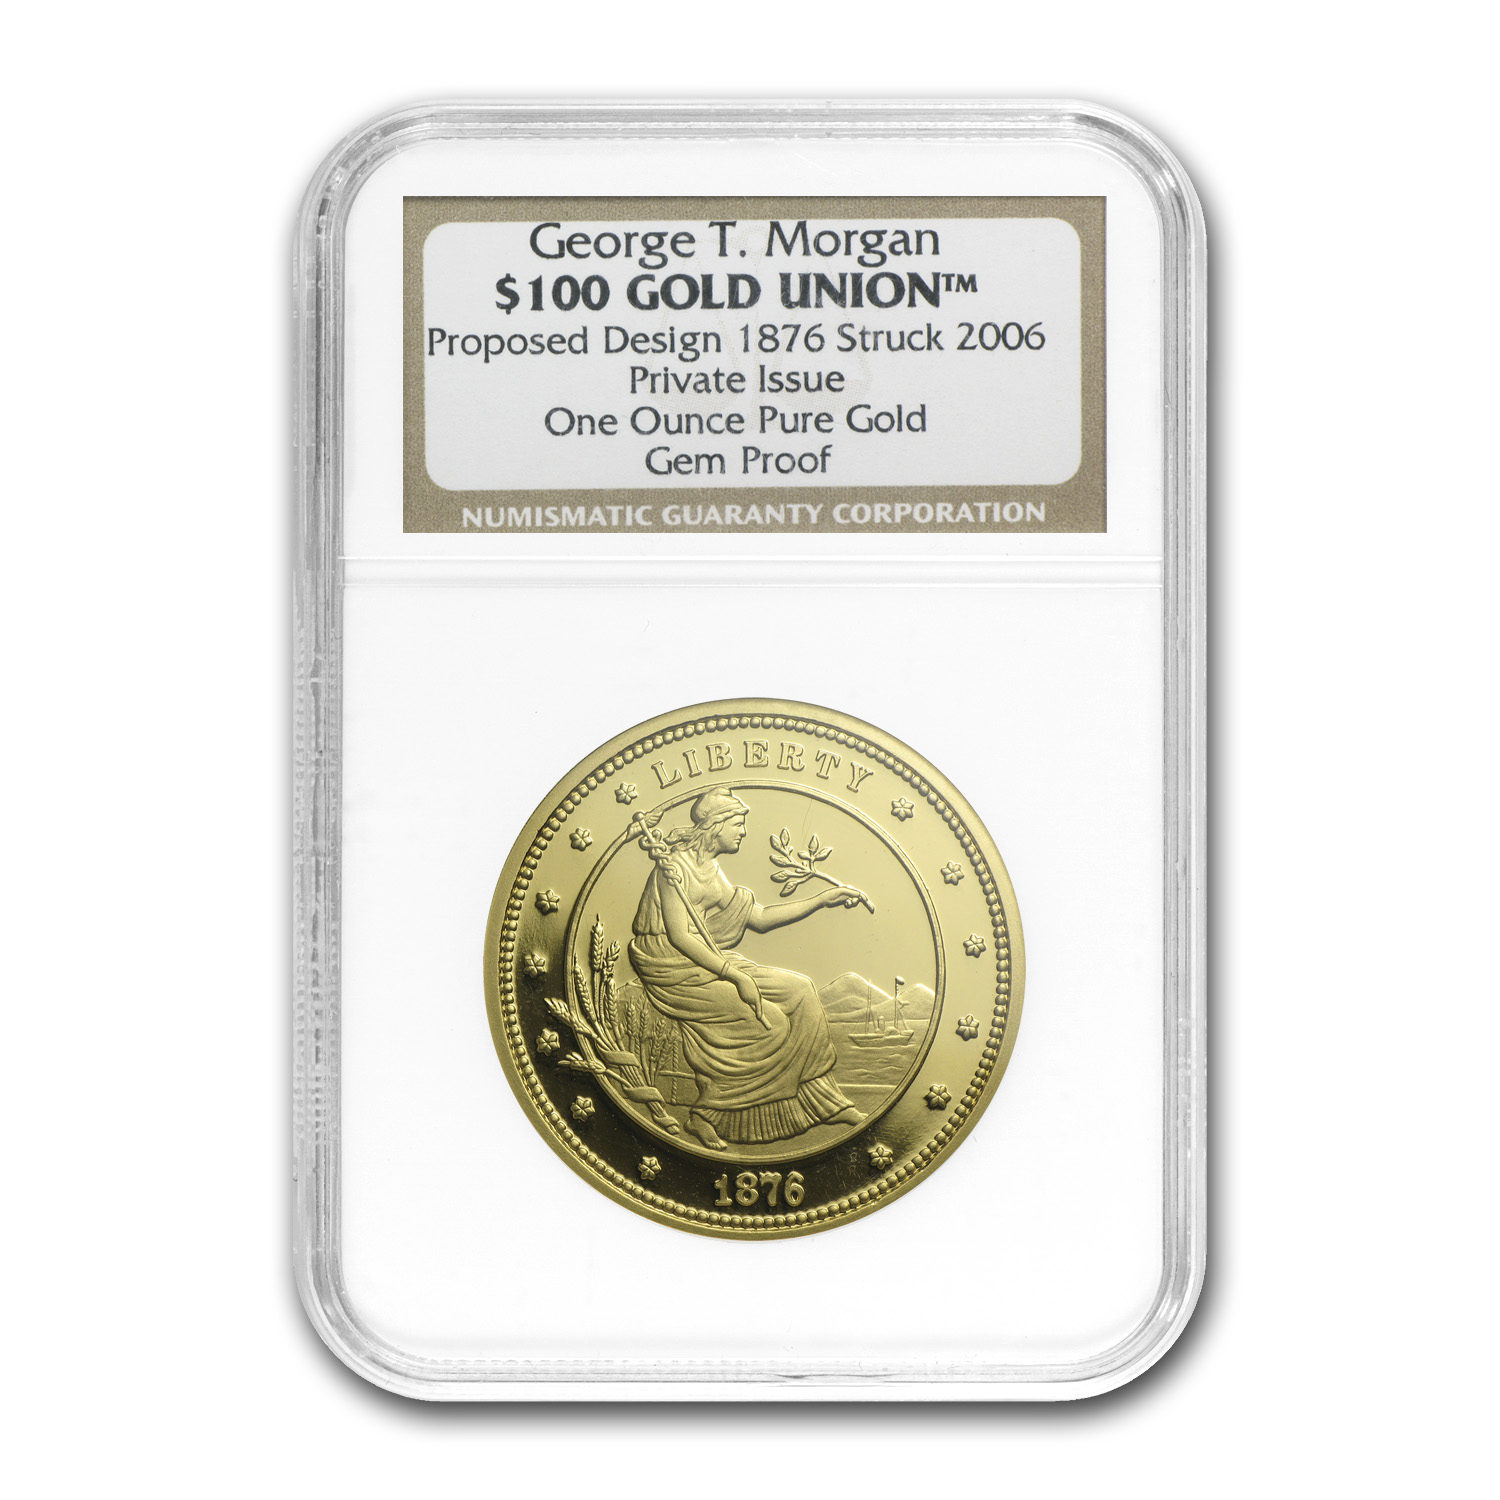 1 oz Gold Rnds - $100 Gold Union George T. Morgan (NGC PF-UCAM)